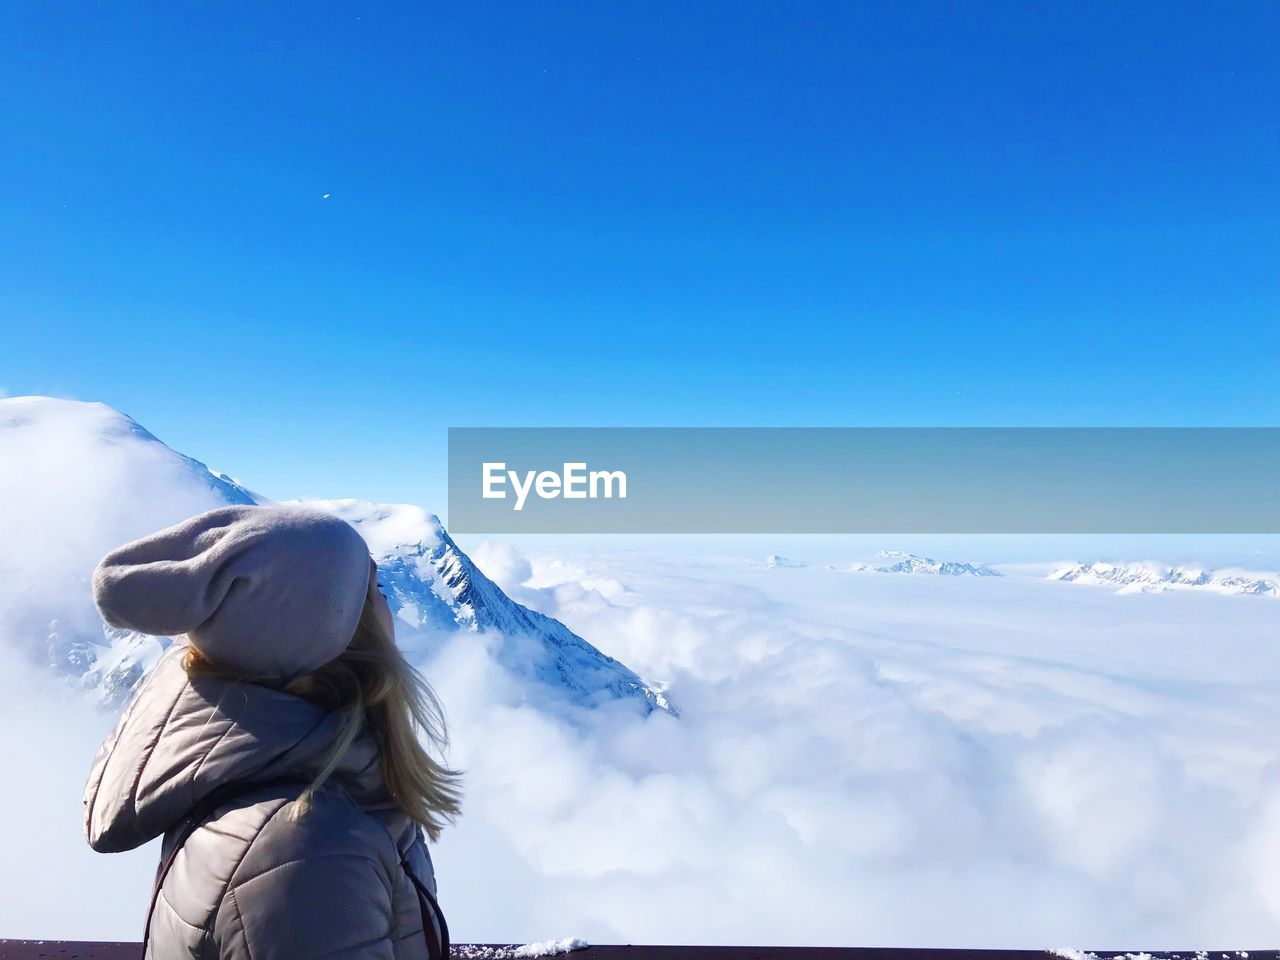 sky, winter, cold temperature, scenics - nature, beauty in nature, real people, clothing, one person, blue, day, snow, leisure activity, cloud - sky, nature, warm clothing, lifestyles, tranquil scene, copy space, hat, outdoors, snowcapped mountain